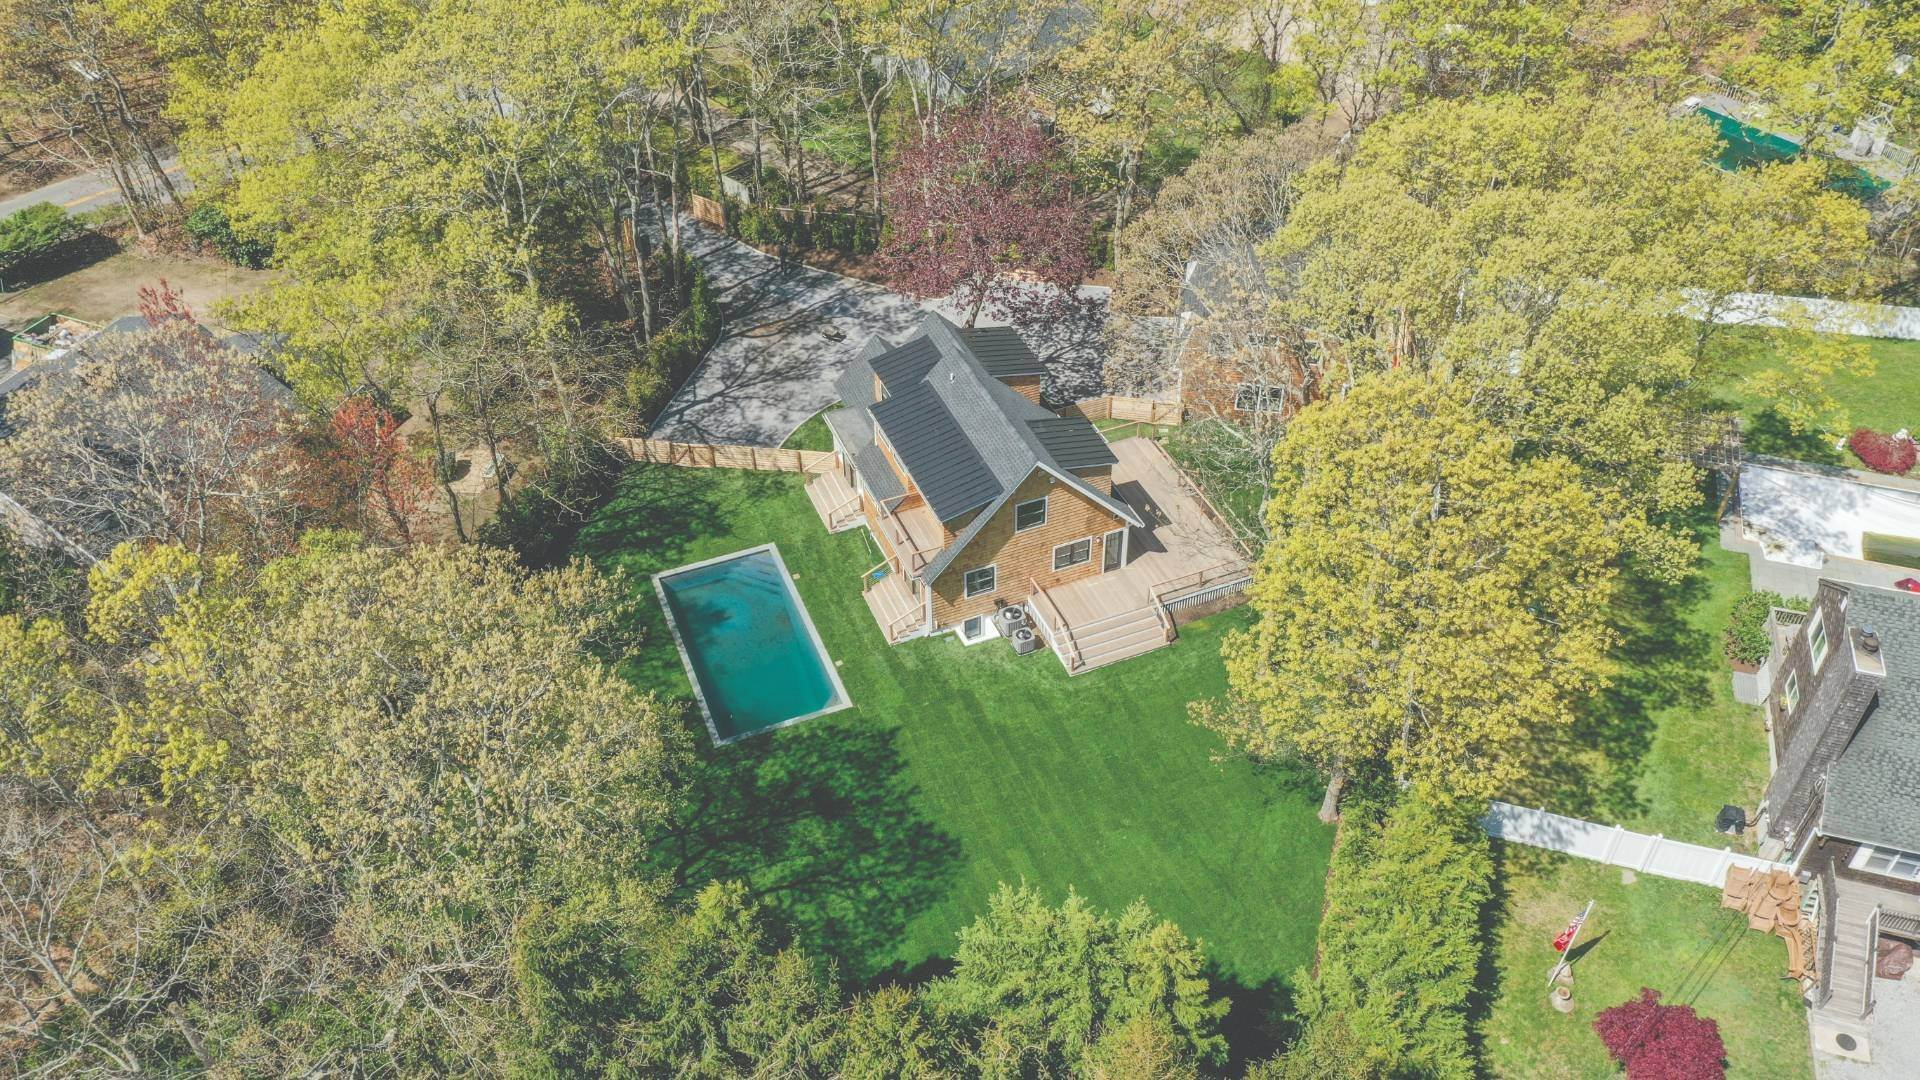 Single Family Home for Sale at Southampton New Renovation Near Village With Heated Gunite Pool 9 West Neck Road, Southampton, NY 11968